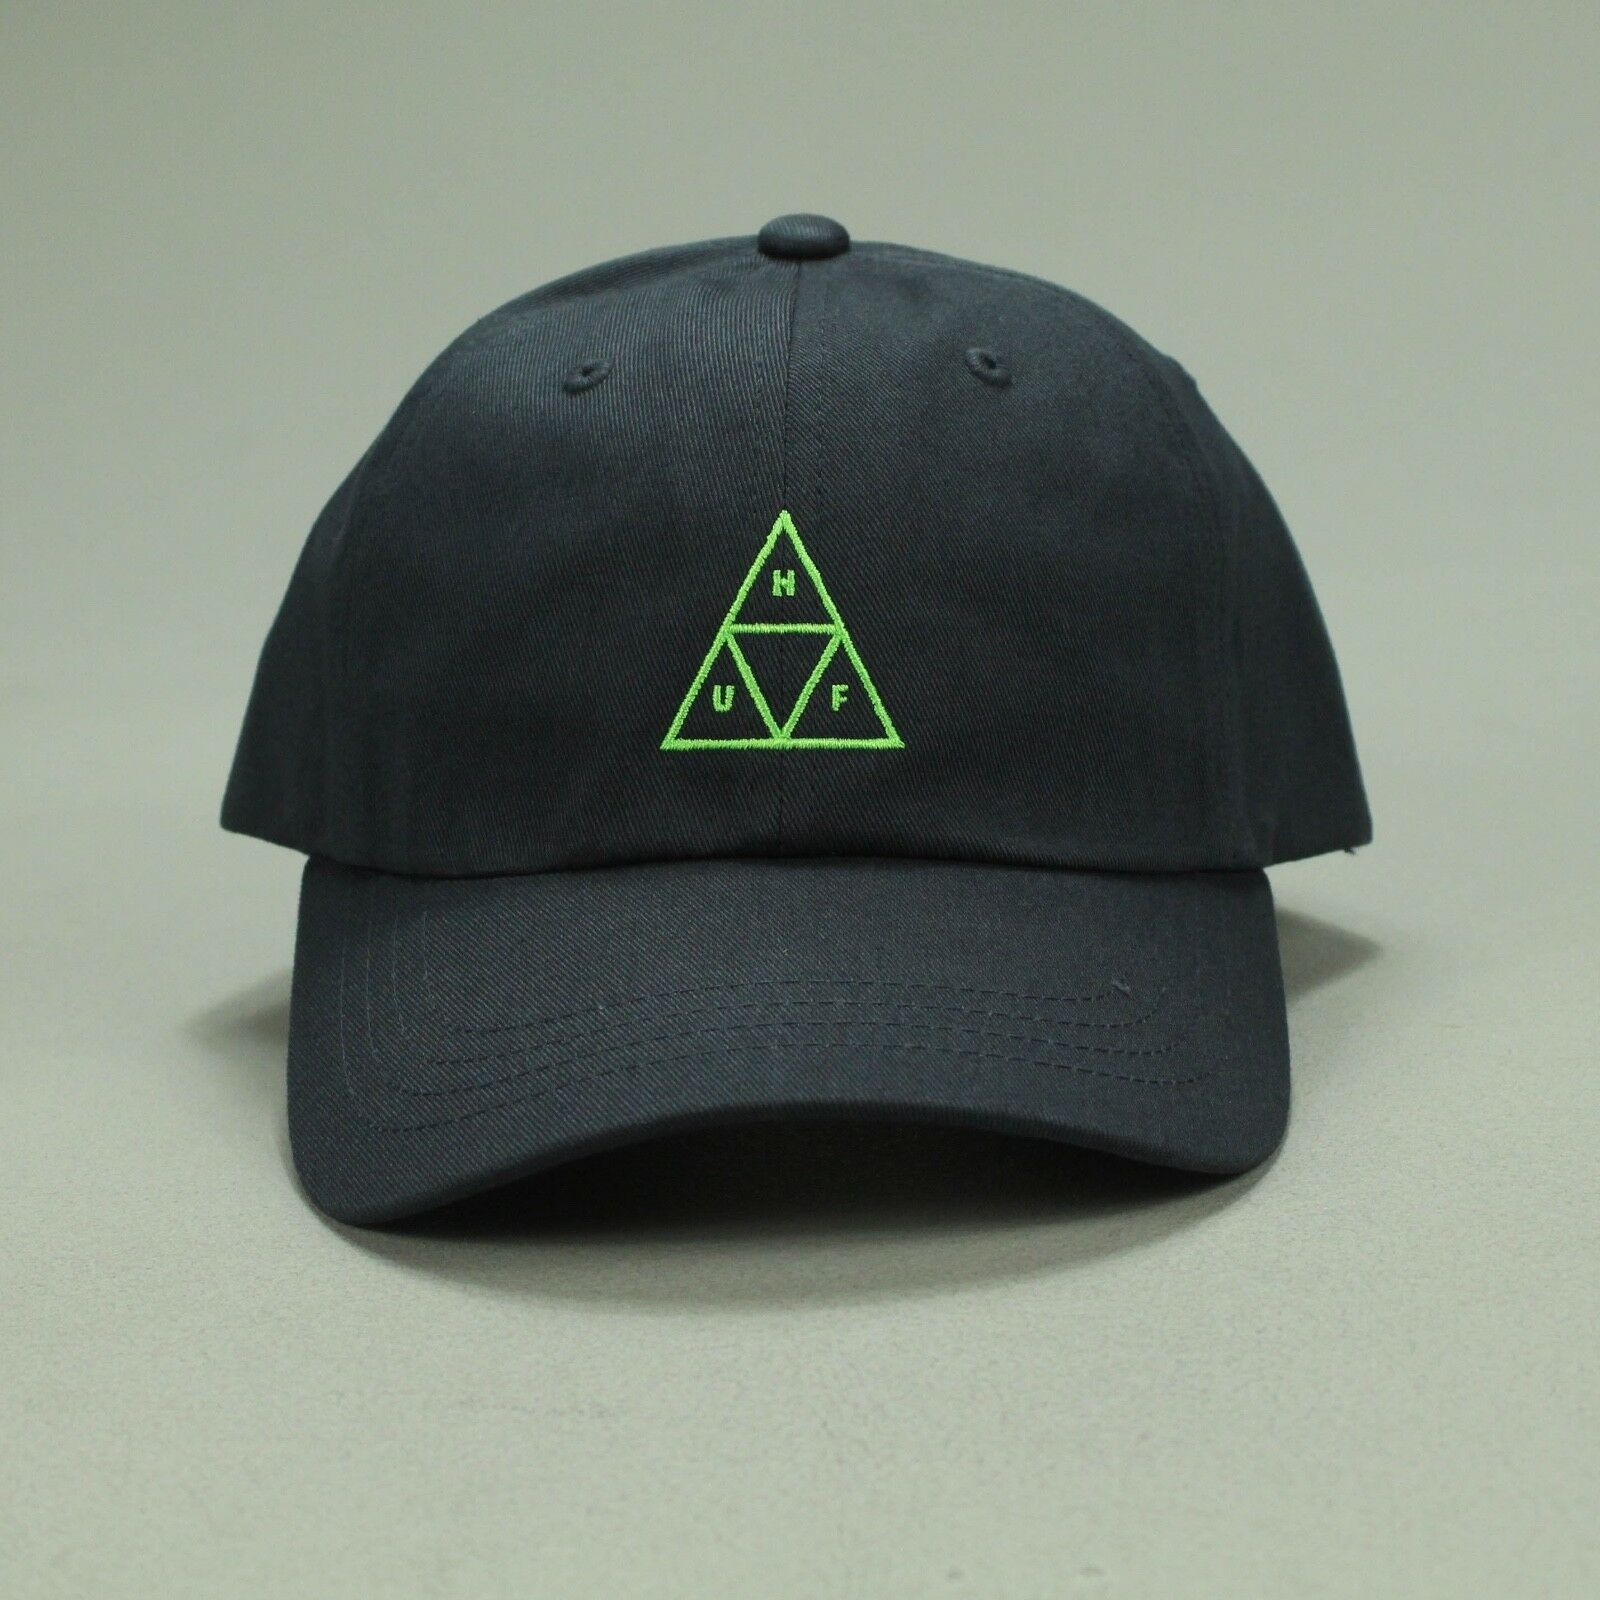 041629ff29ff1 Details about HUF Triple Triangle Curved 6 Panel Hat Brand New 6 Panel Cap  - Navy